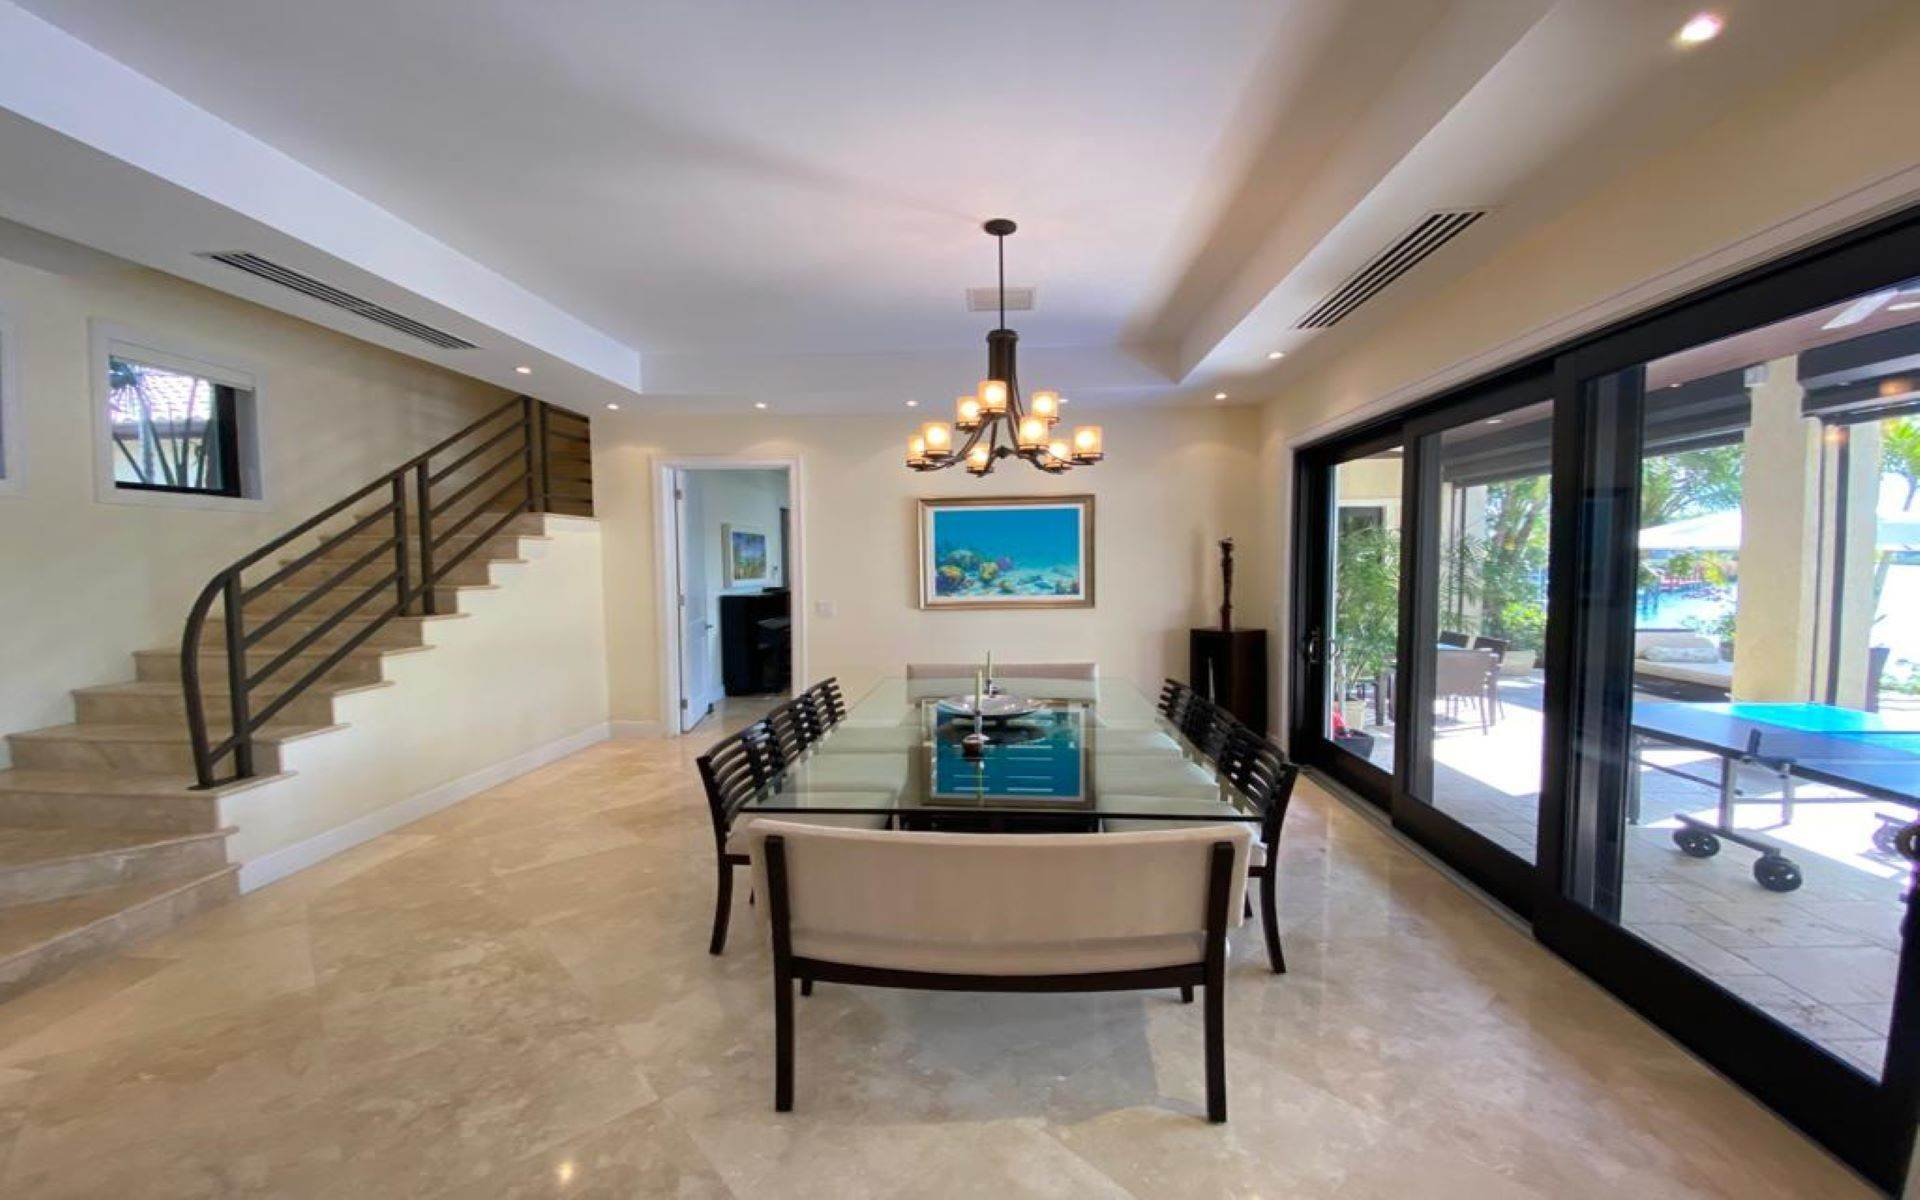 6. Single Family Homes for Sale at Immaculate House on Venetian Lane in Old Fort Bay Old Fort Bay, Nassau And Paradise Island, Bahamas